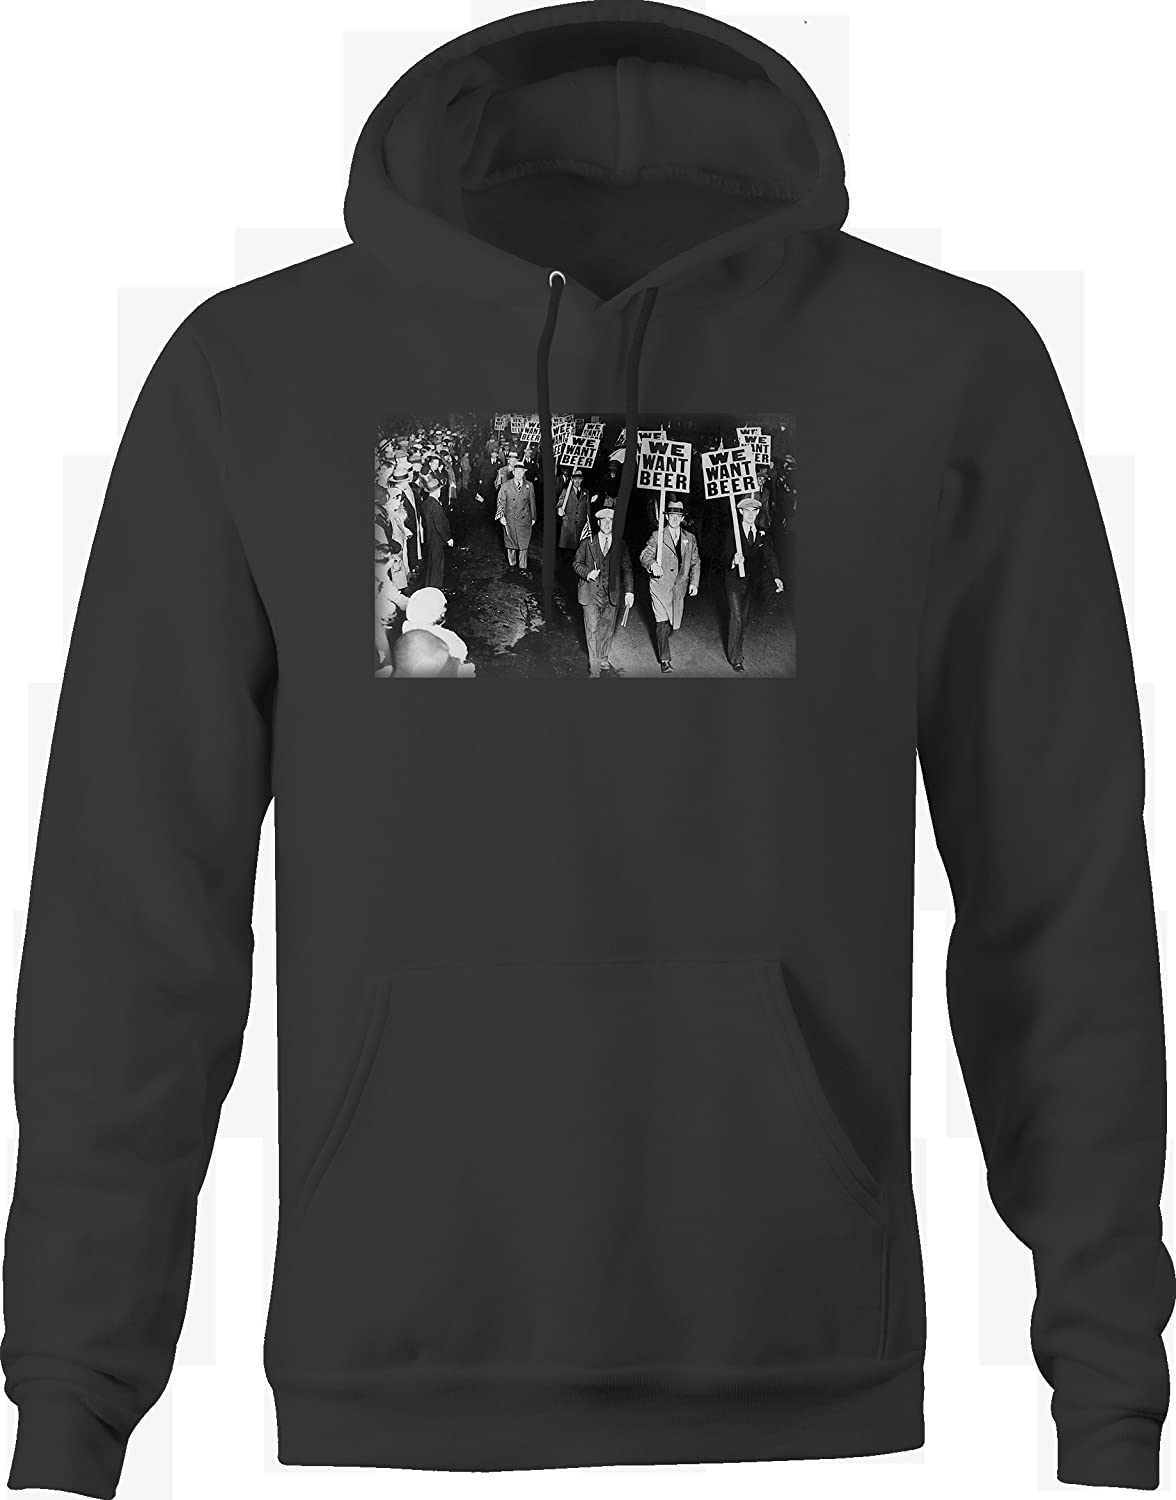 Prohibition March We Want Beer Protest March Vintage American Hoodie for Men